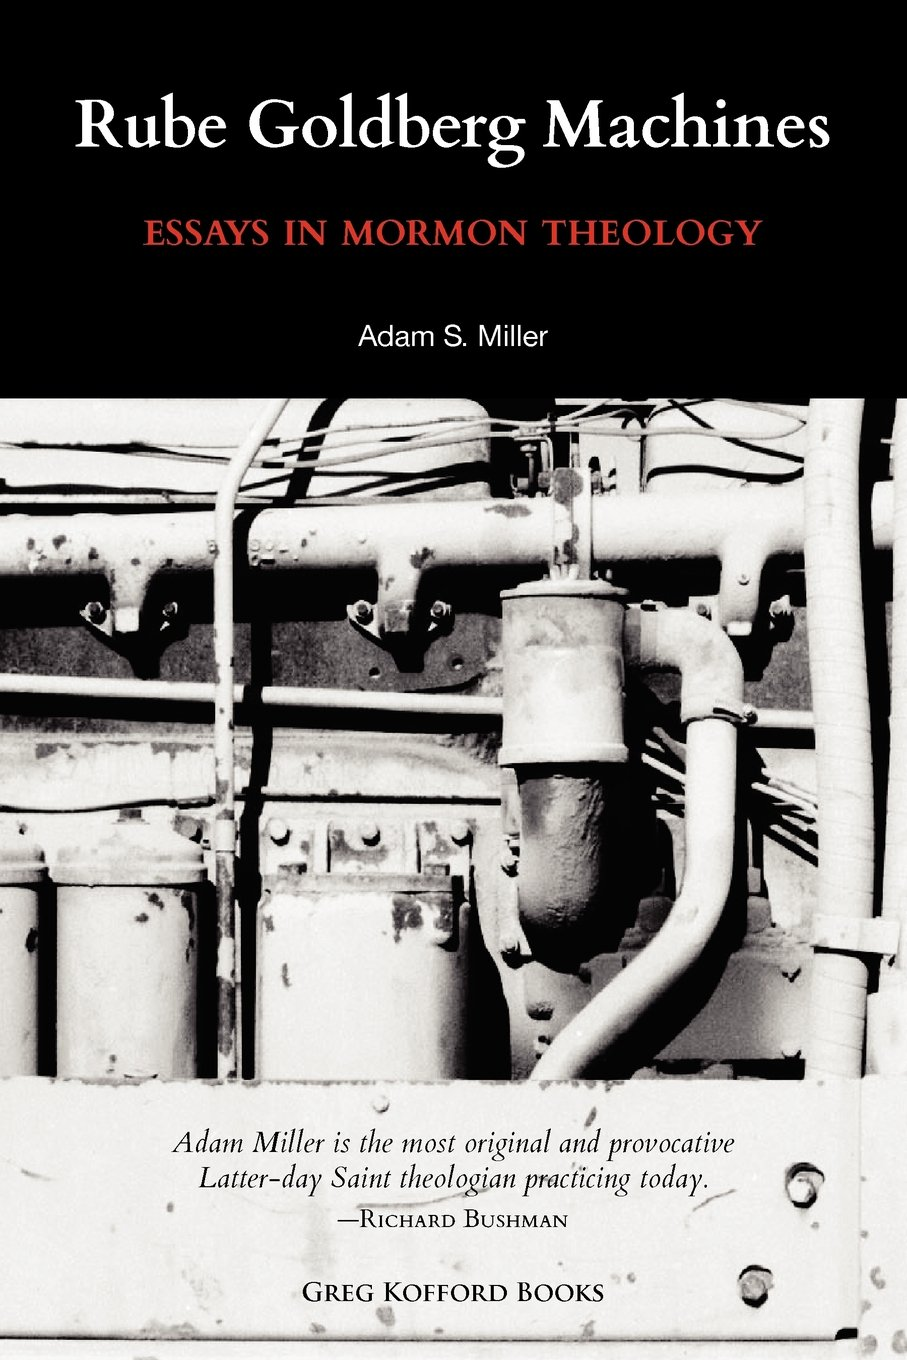 rube goldberg machines essays in mormon theology adam miller rube goldberg machines essays in mormon theology adam miller richard l bushman 9781589581937 com books